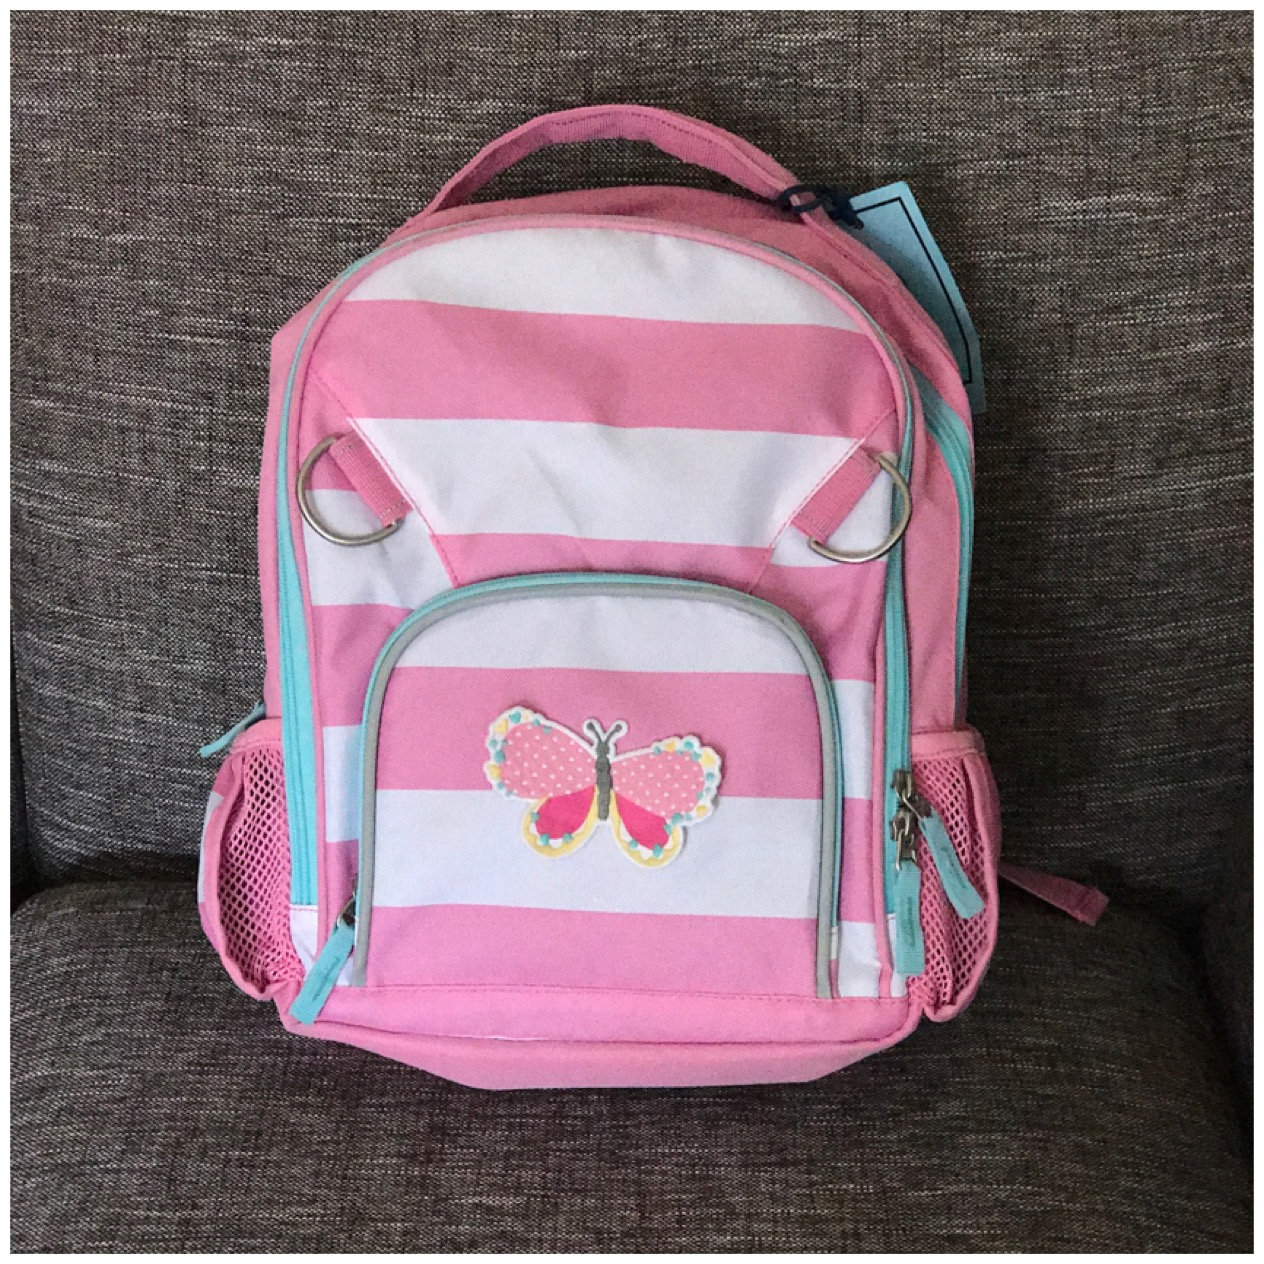 6 things every parent needs for back to school survival!